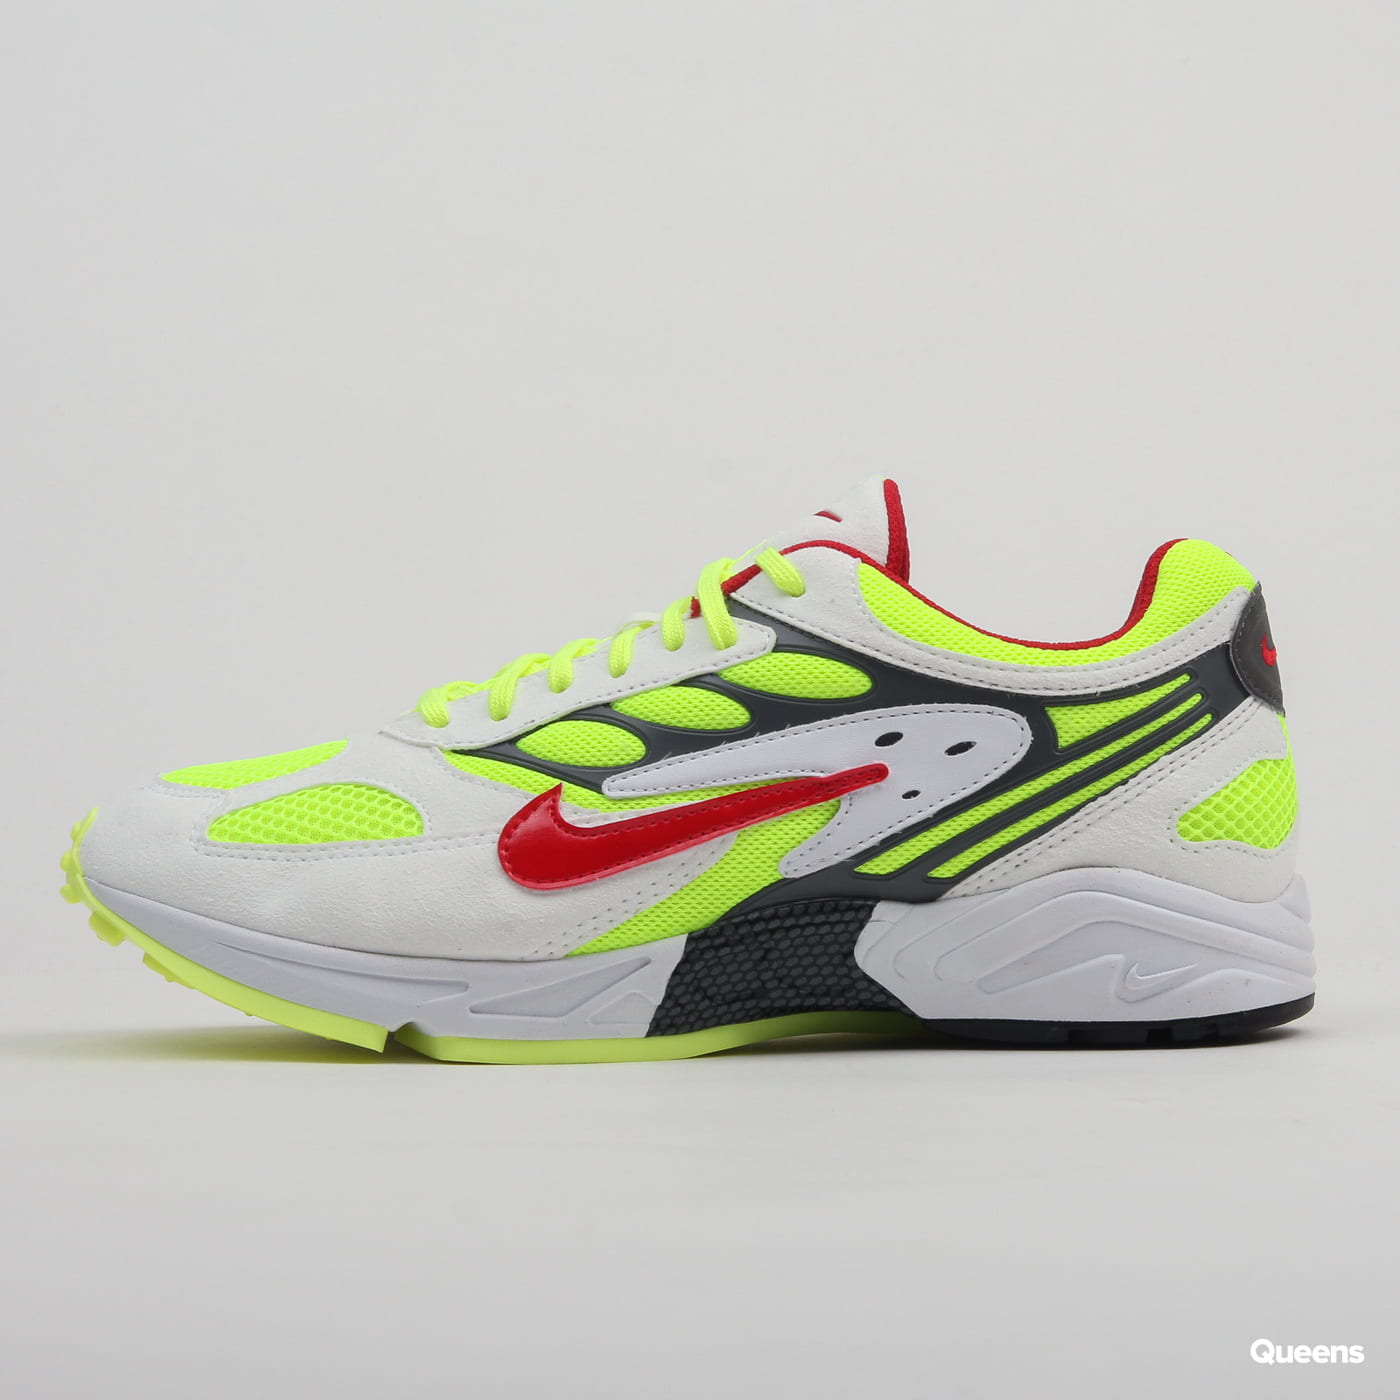 Nike Air Ghost Racer white / atom red - neon yellow